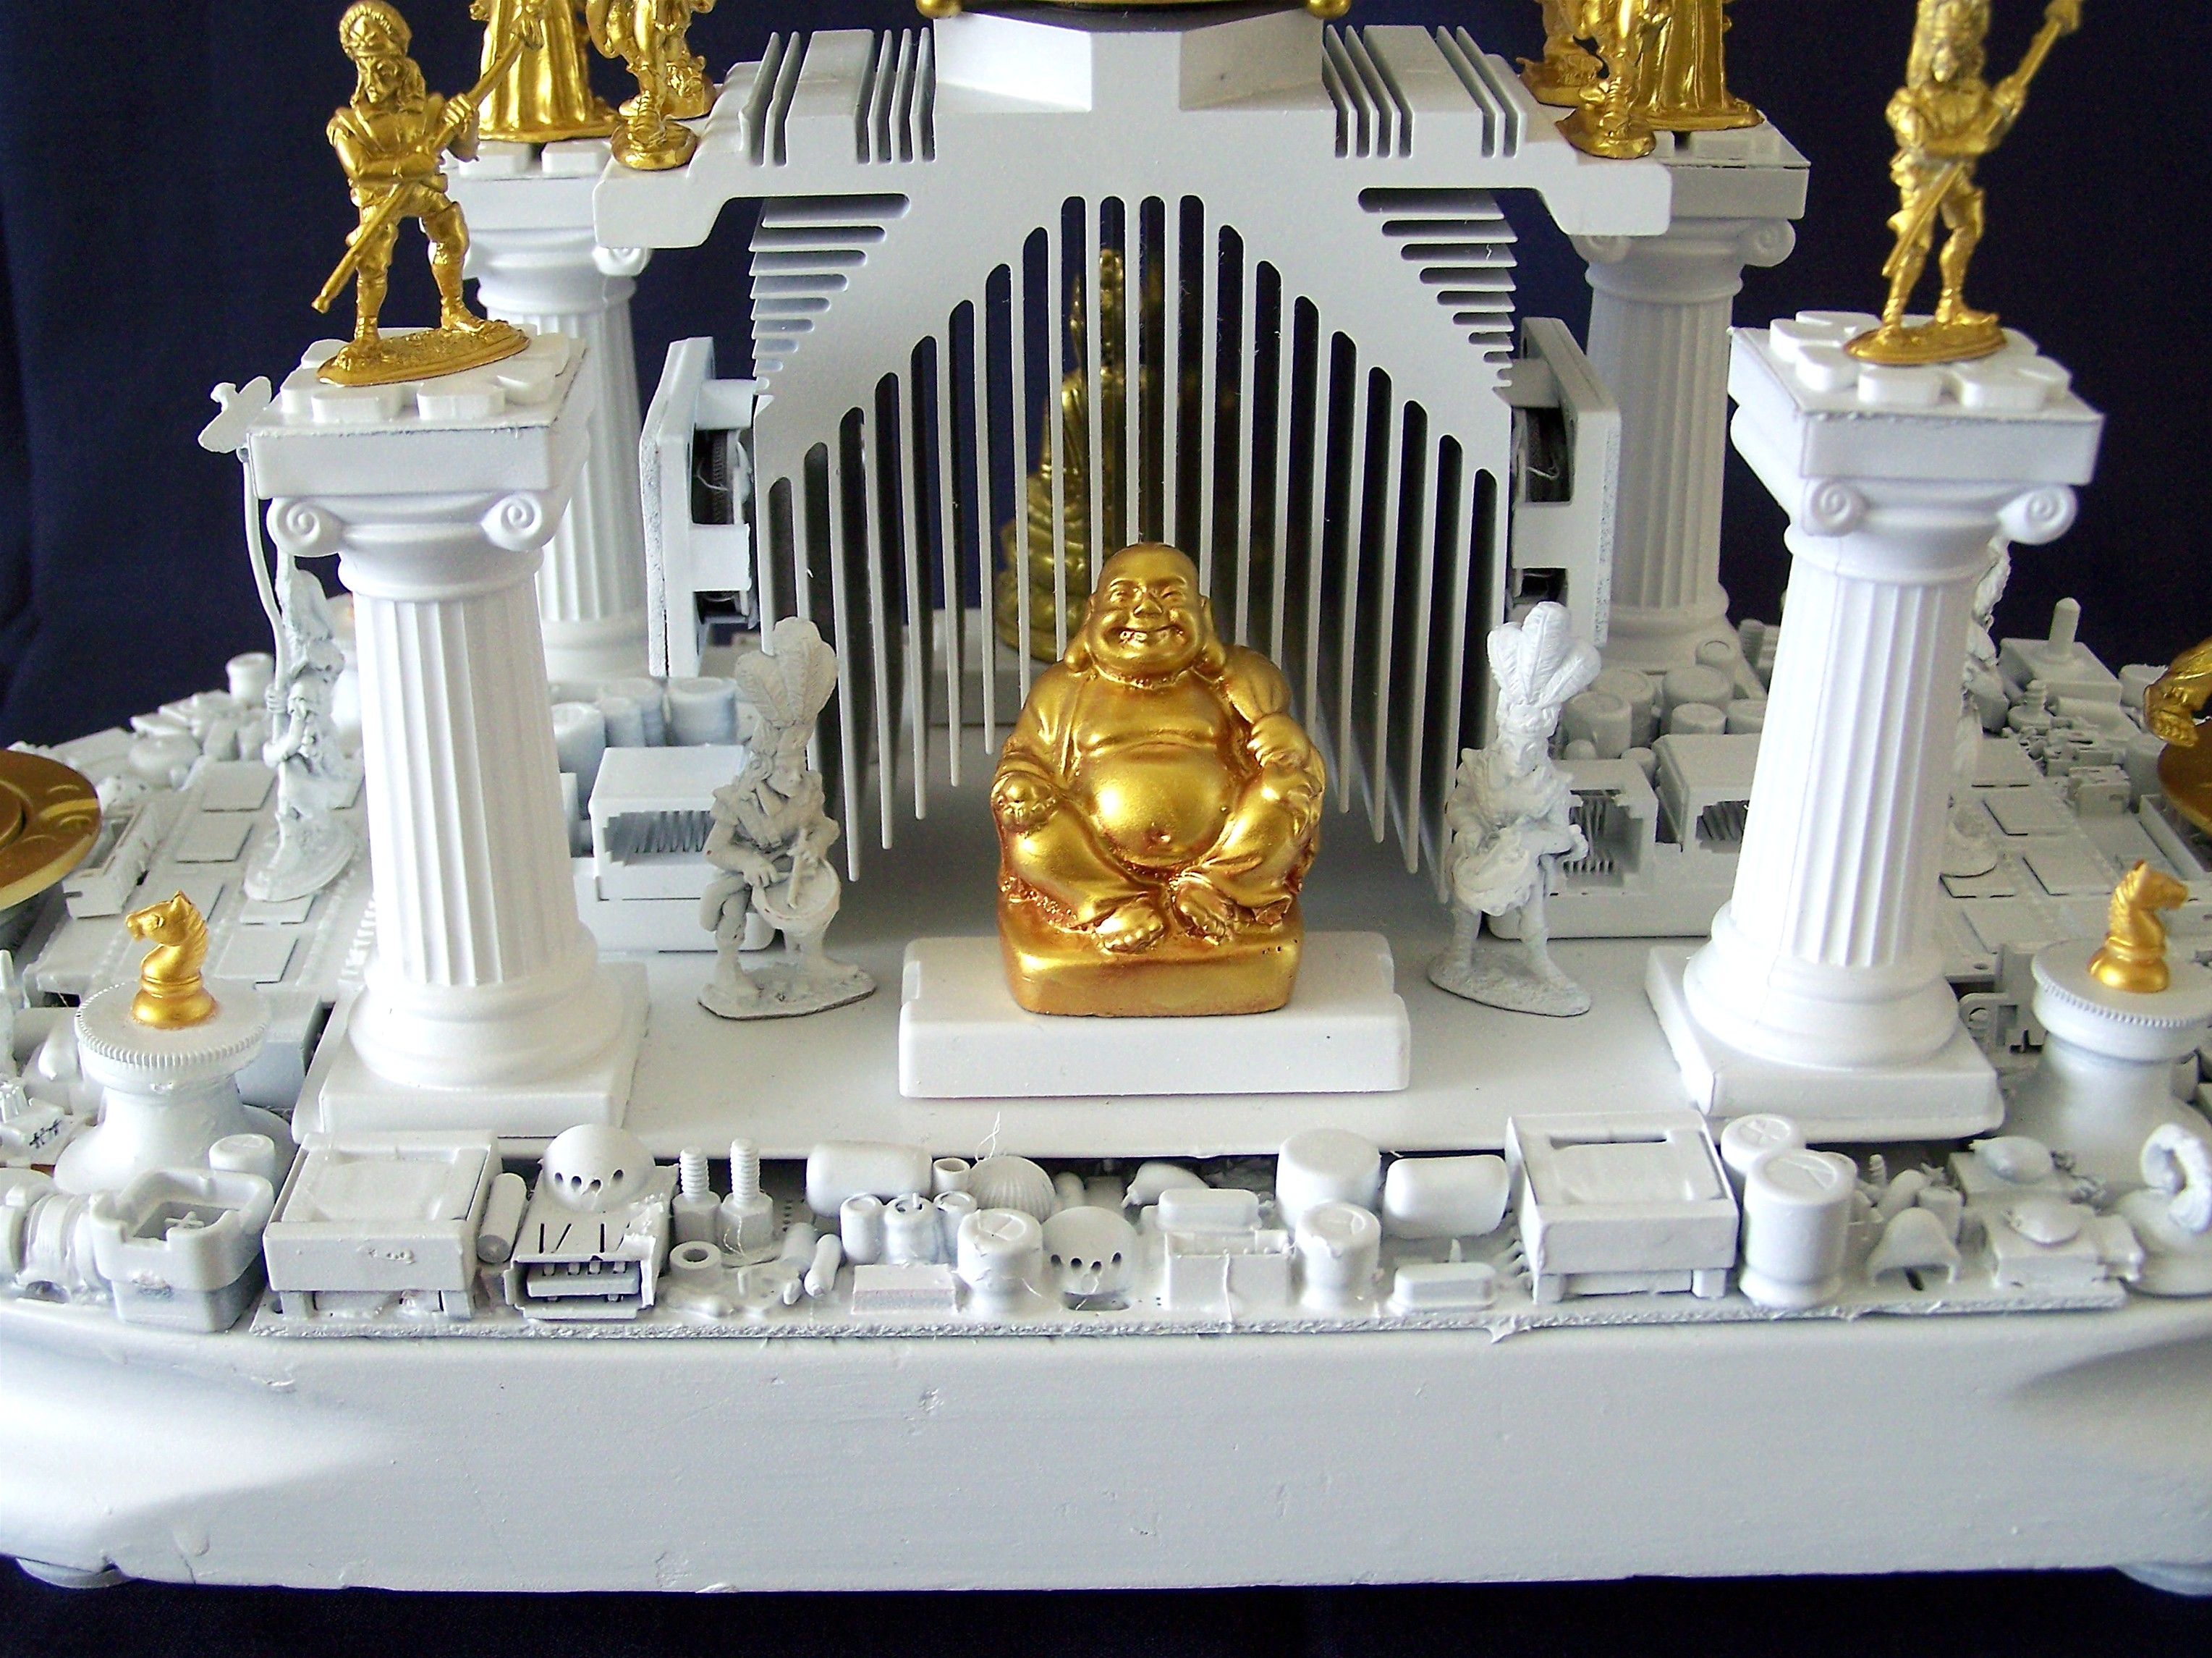 THE TEMPLE 3